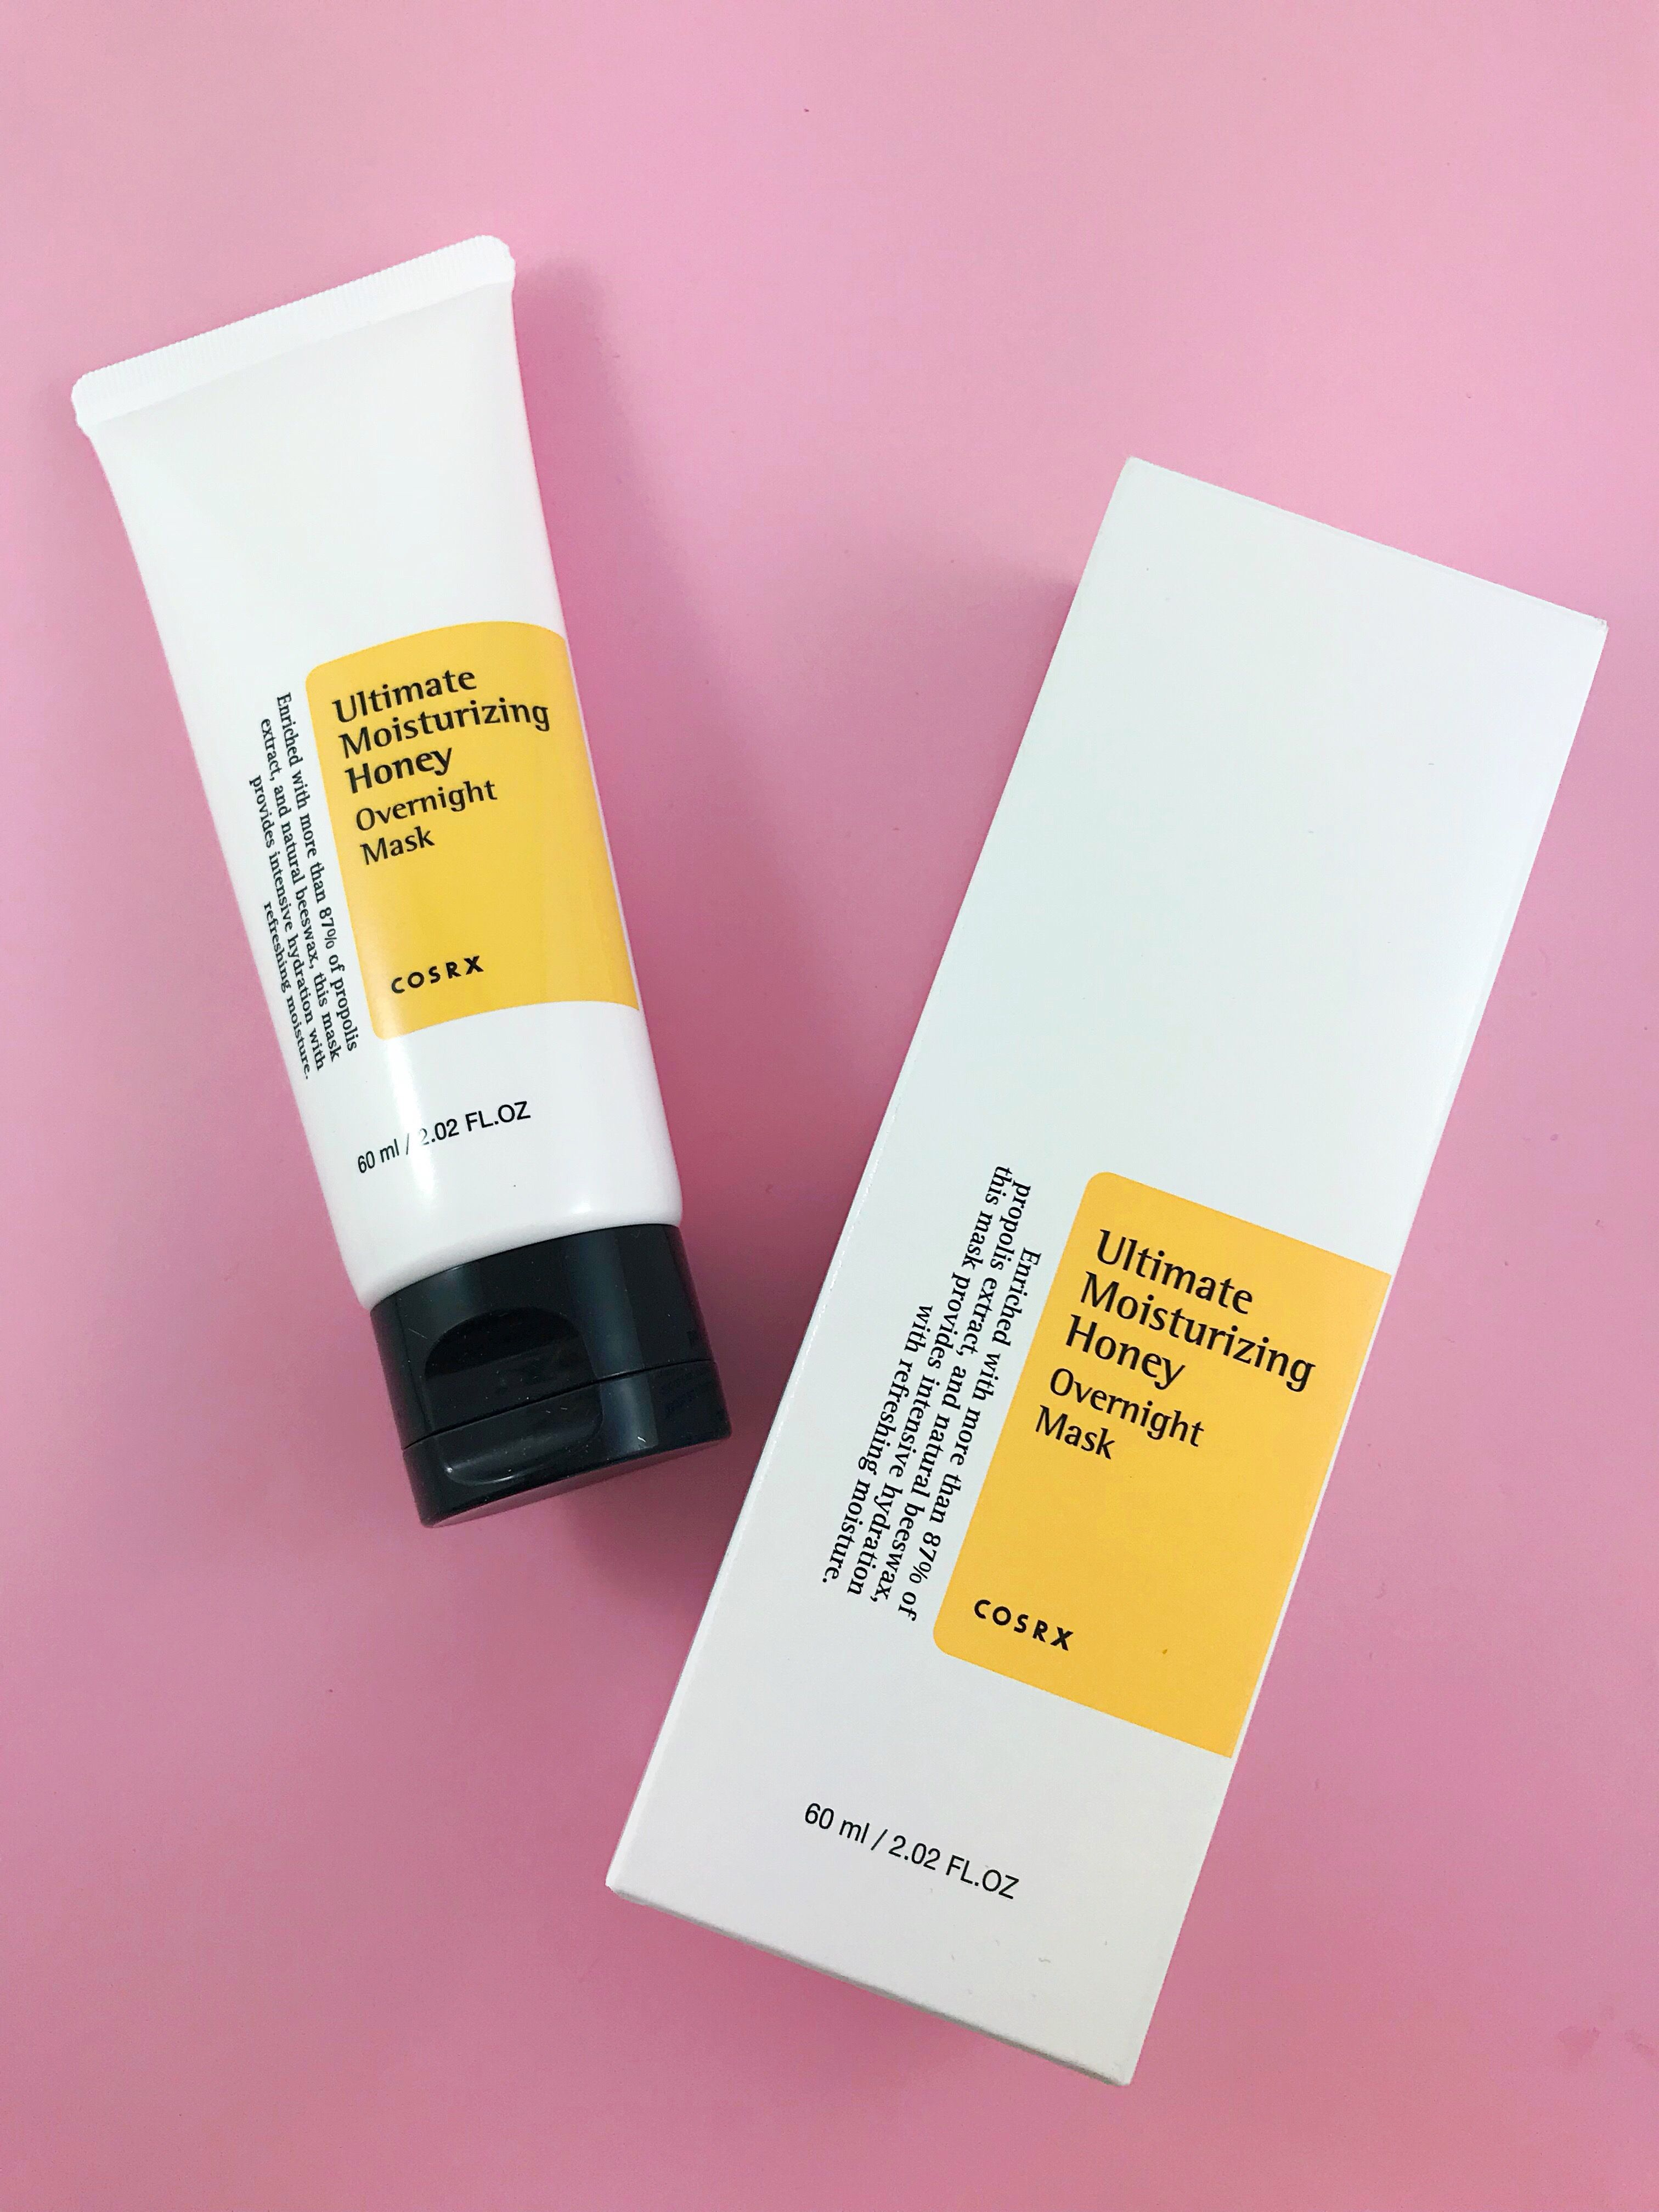 COSRX Overnight Honey Mask The Perfect Sleeping Mask for dry skin